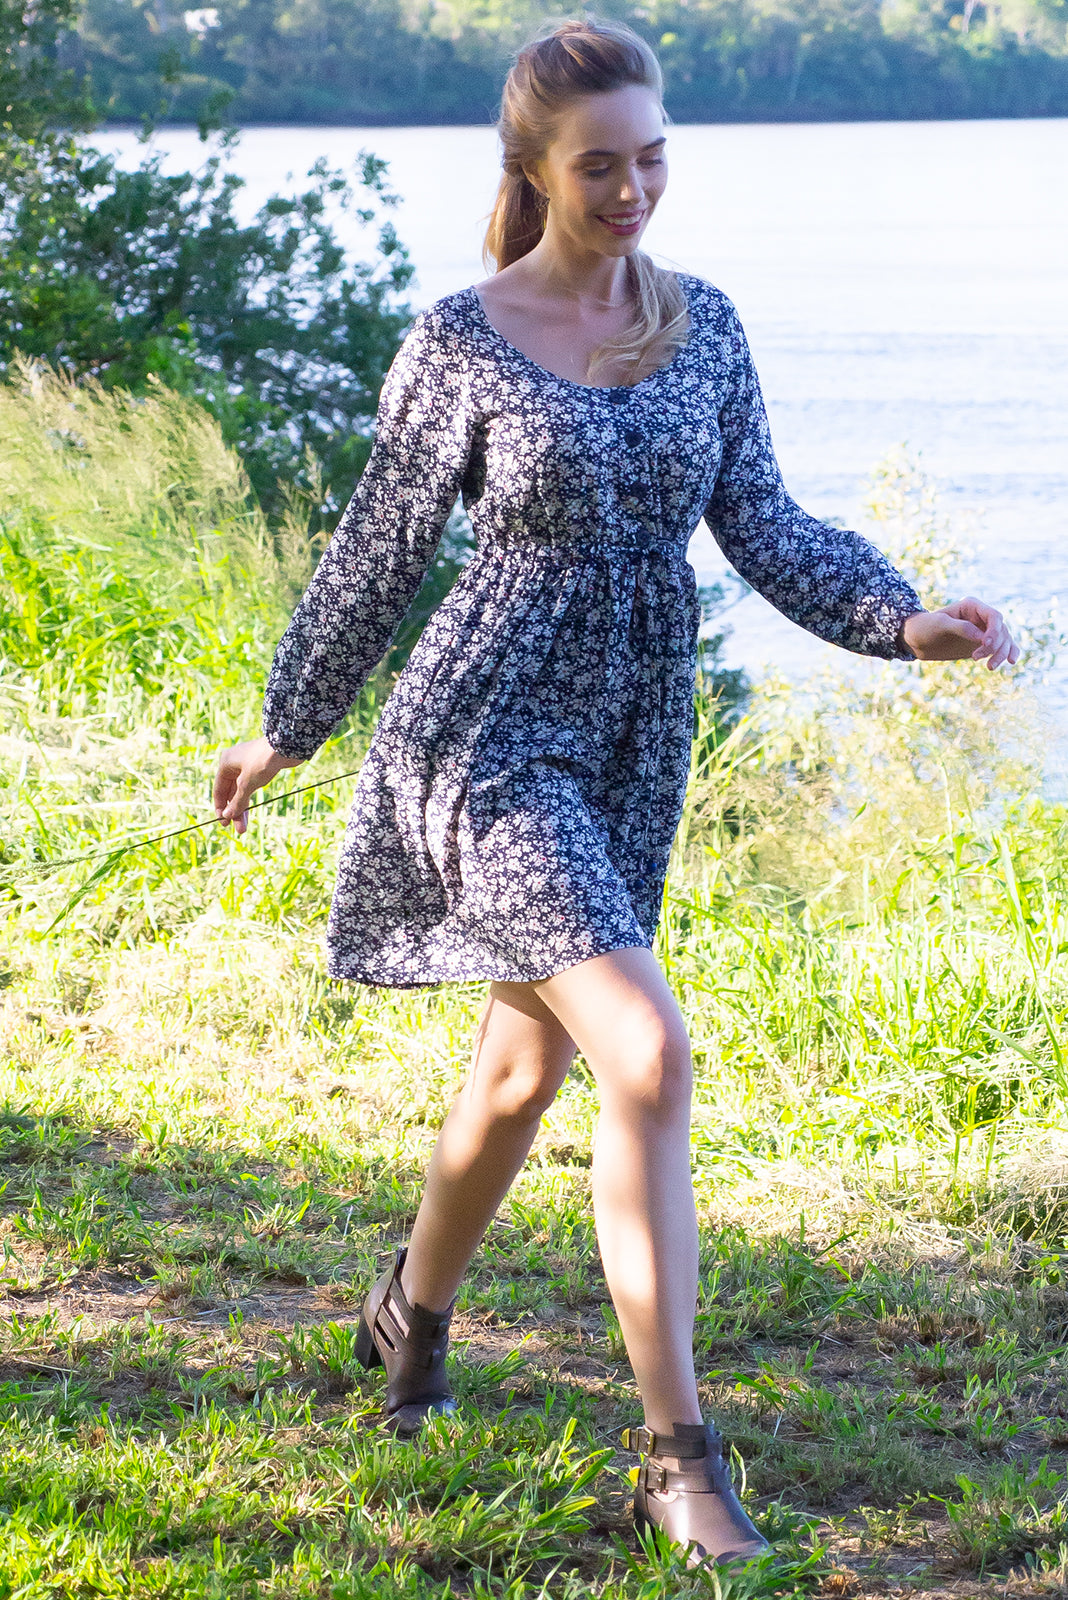 Jennifer Juno Navy Dress with a button front, long sleeve with elastic at the wrist, side pockets and a full skirt in a rust navy and white floral ditzy print on a 100% woven rayon chic and effortless style